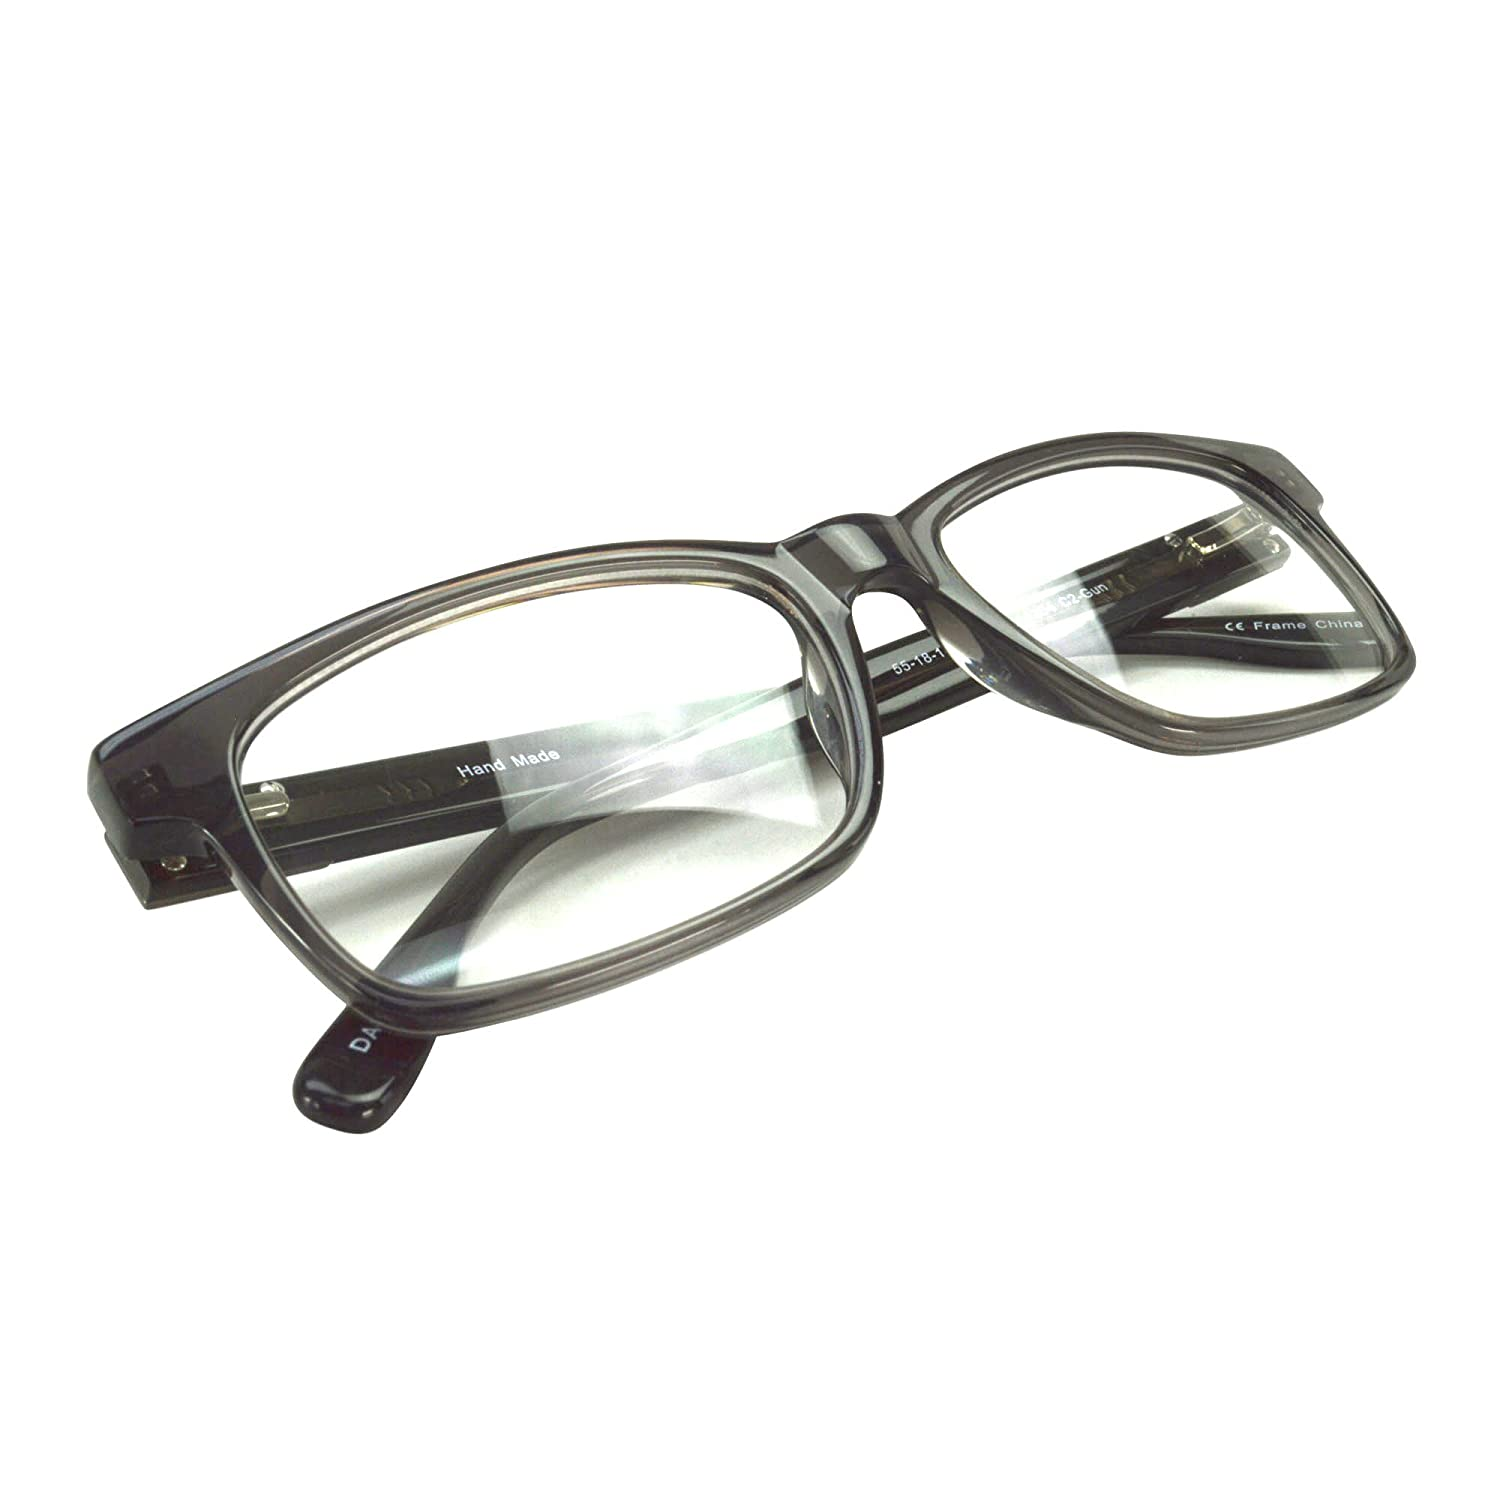 1771fda8cb Amazon.com  Mens Strong Glasses Frames Prescription Eyeglasses Rxable 55-18- 145-37 in Gunmetal  Clothing